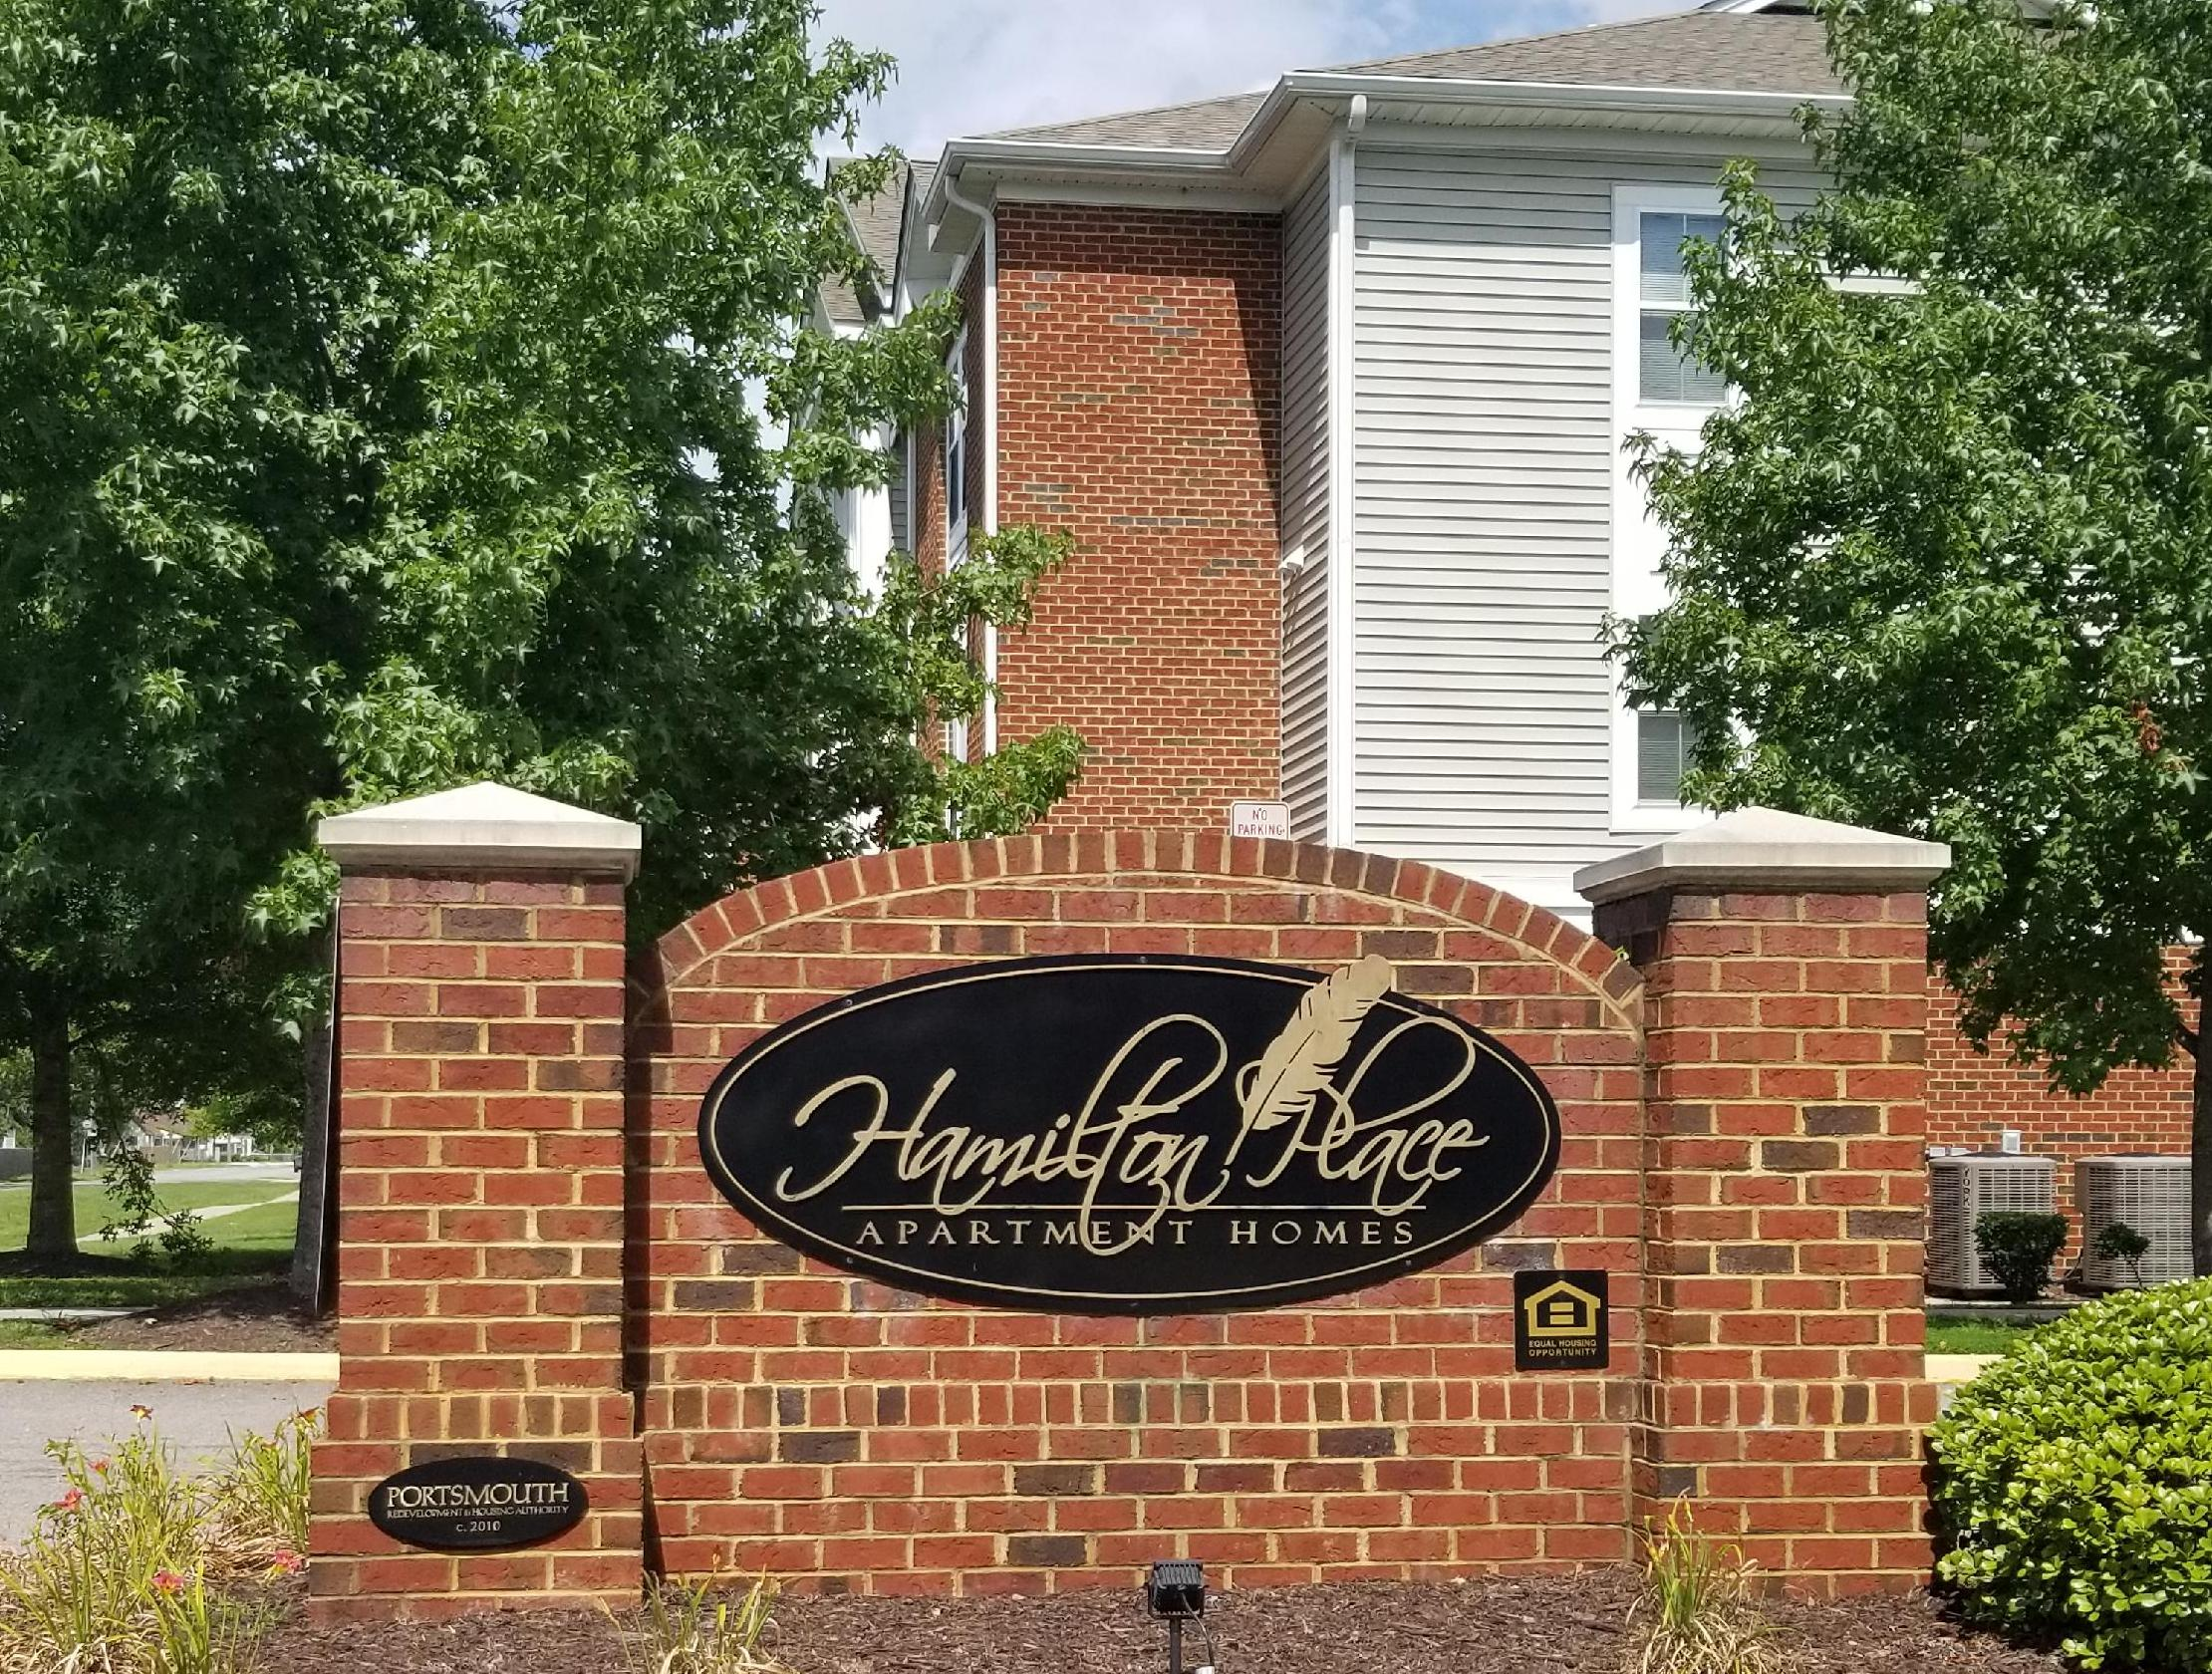 Image of Hamilton Place l & ll Apartments in Portsmouth, Virginia